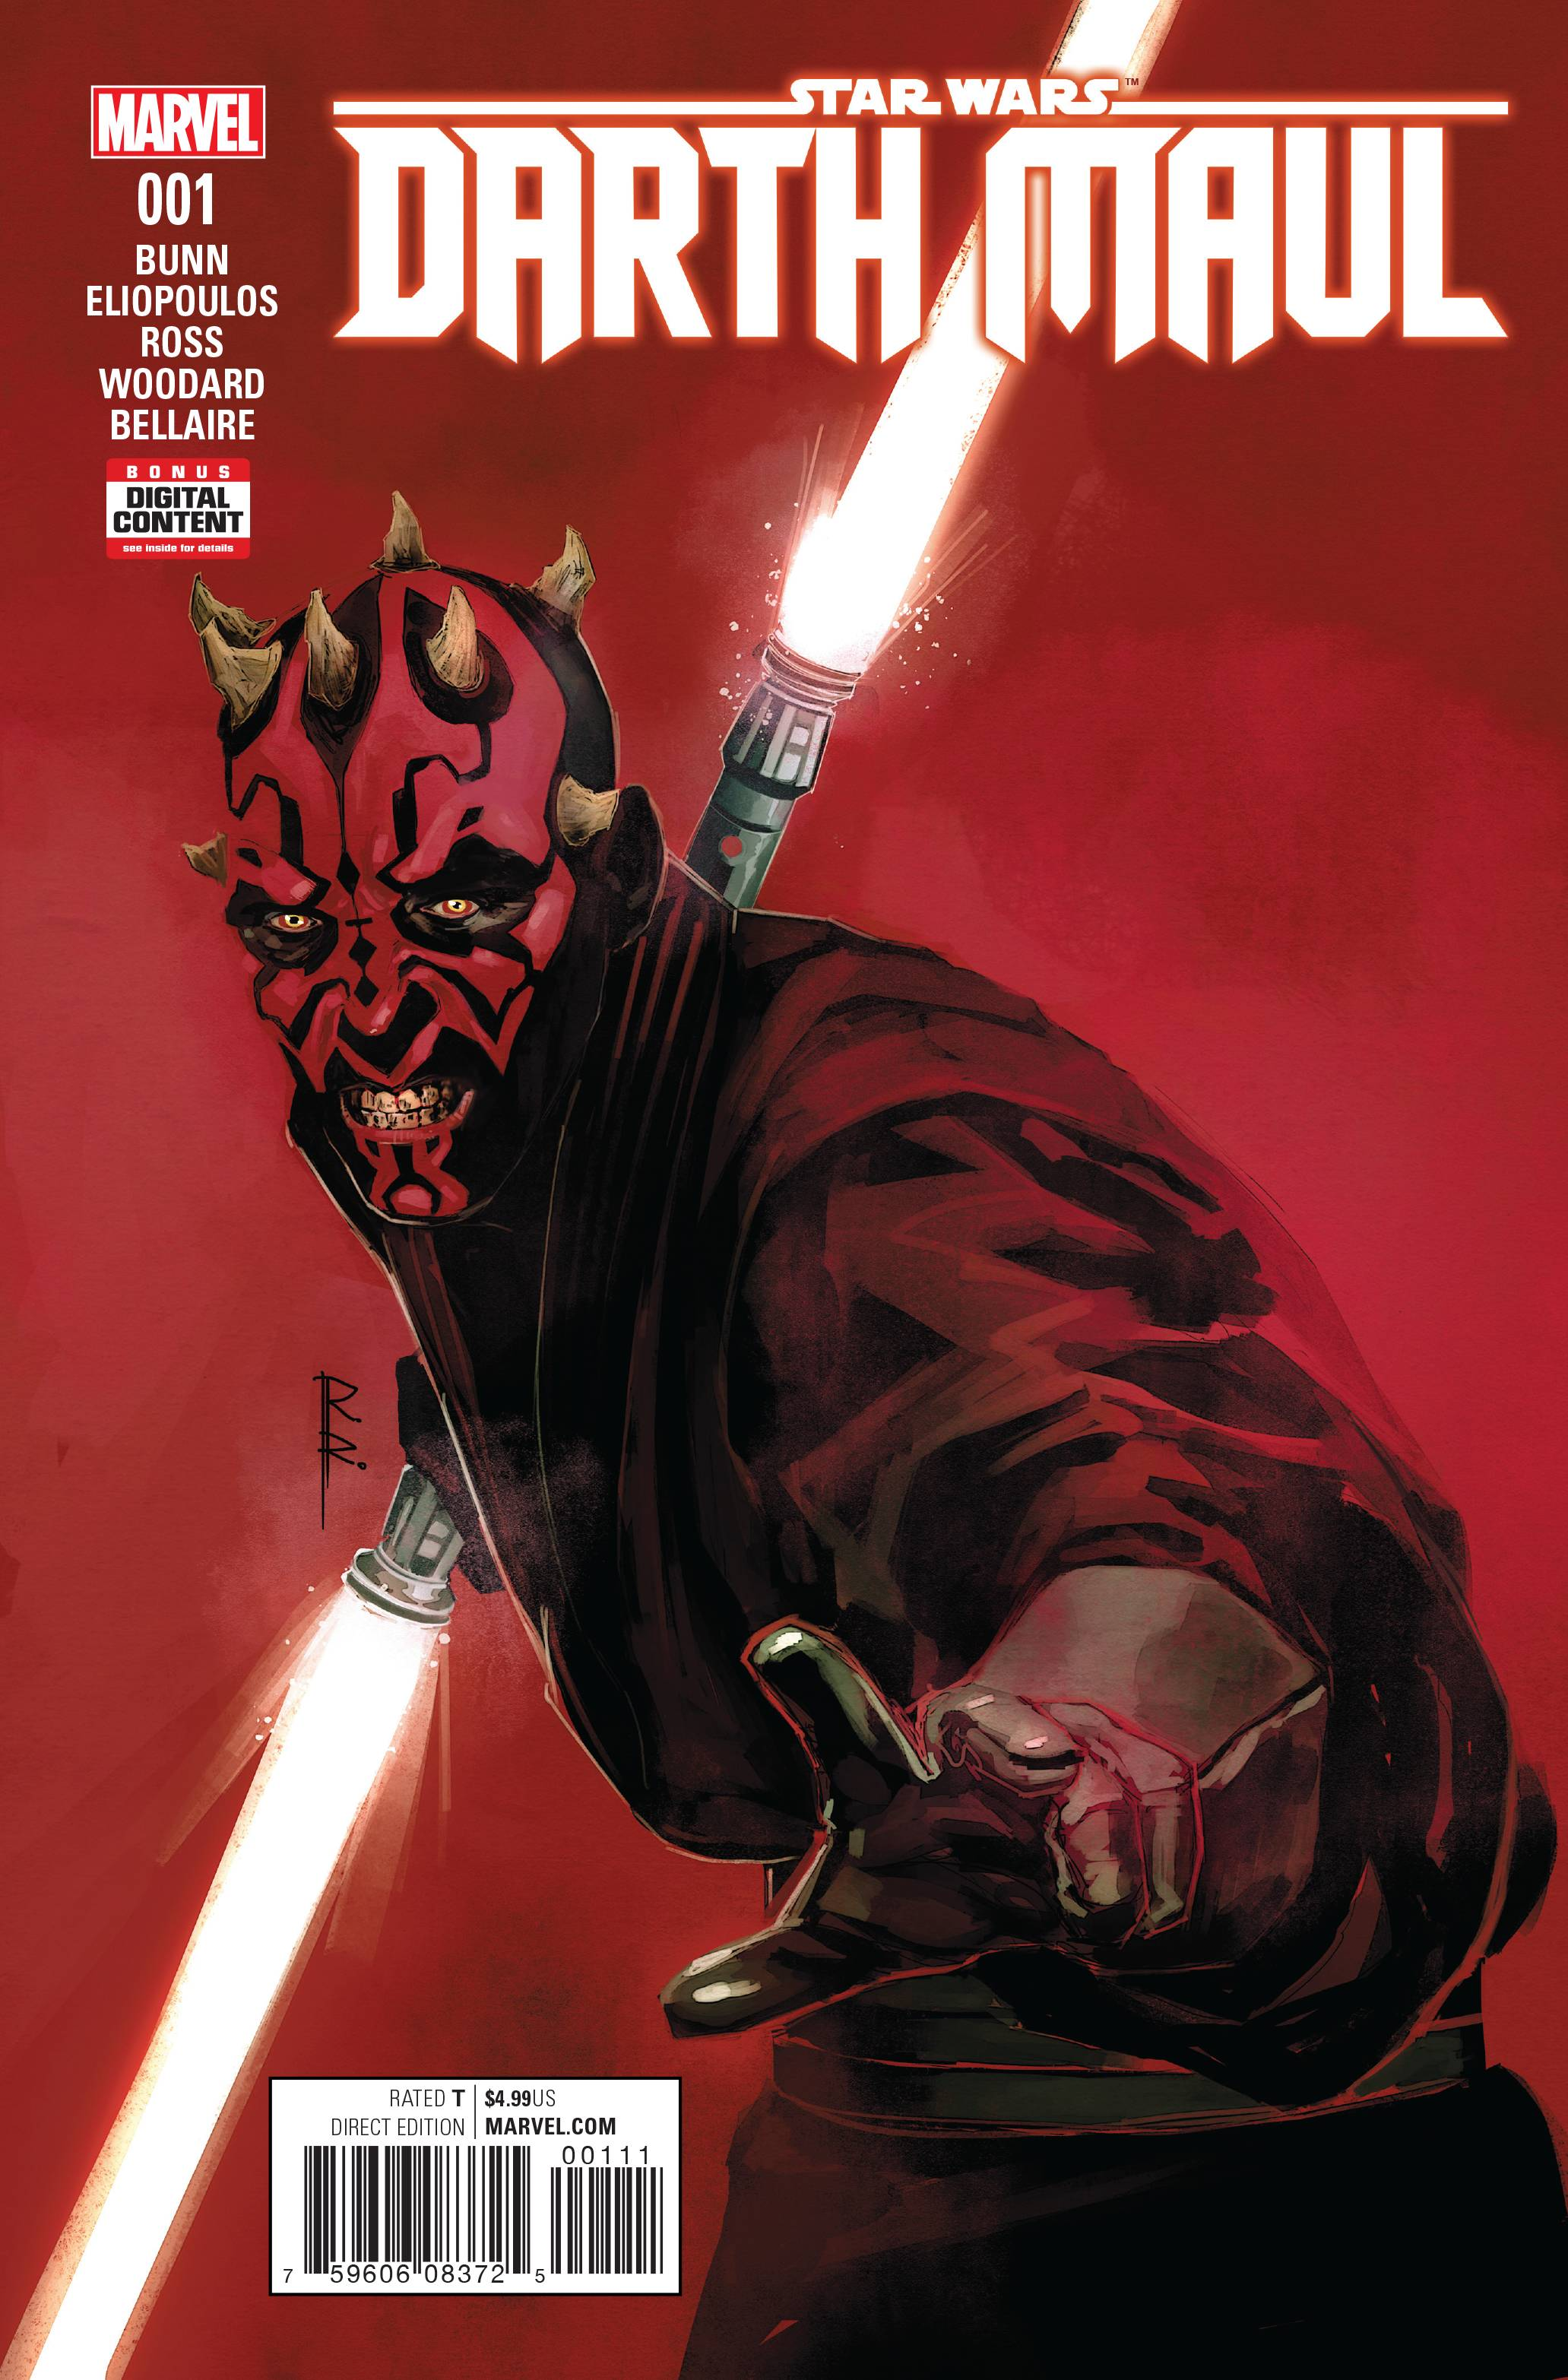 STAR WARS DARTH MAUL #1